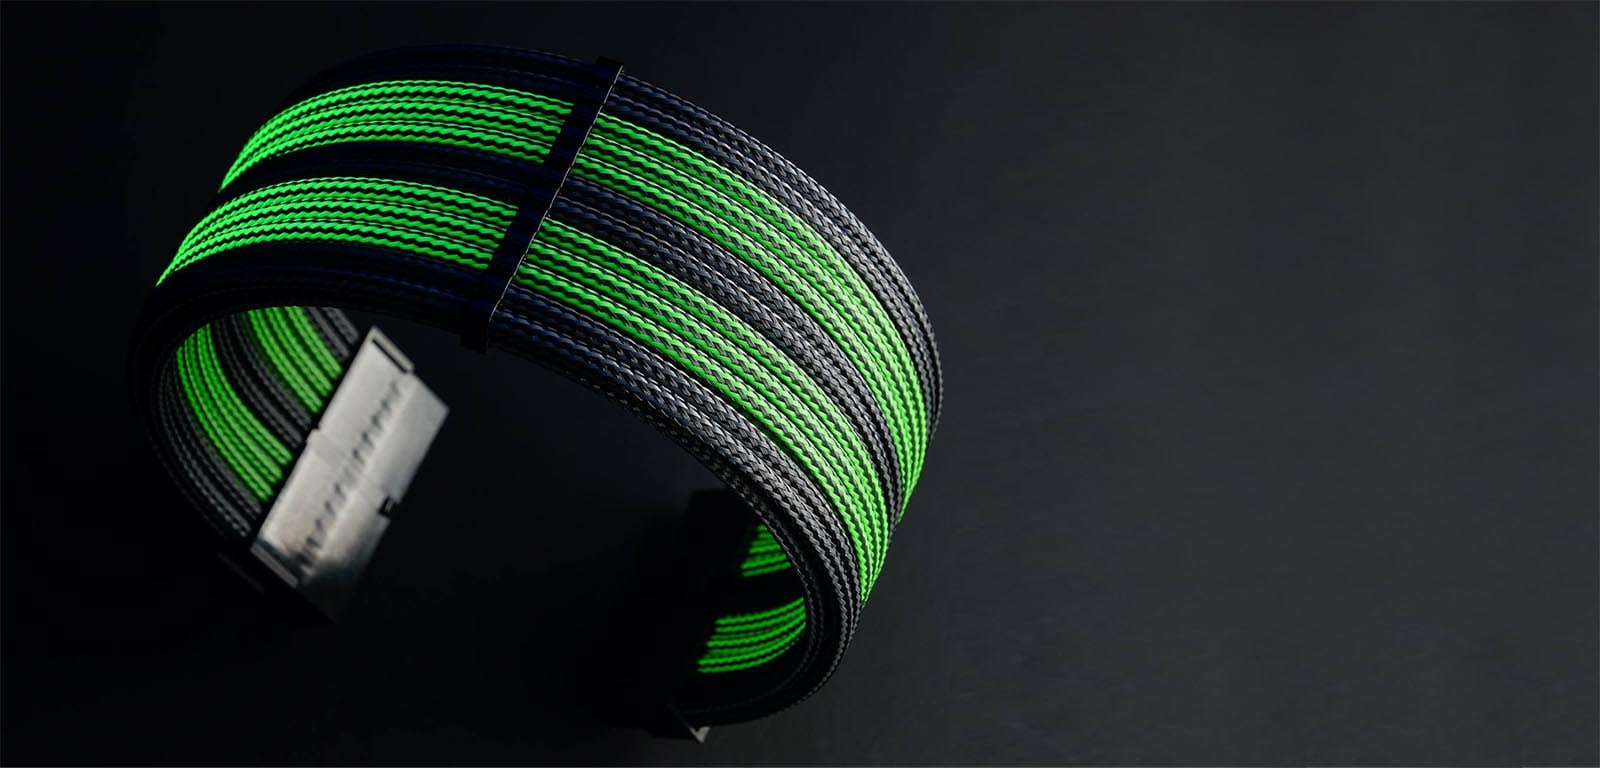 uv reactive mdpc-x cable sleeving on mod-one custom pc cables